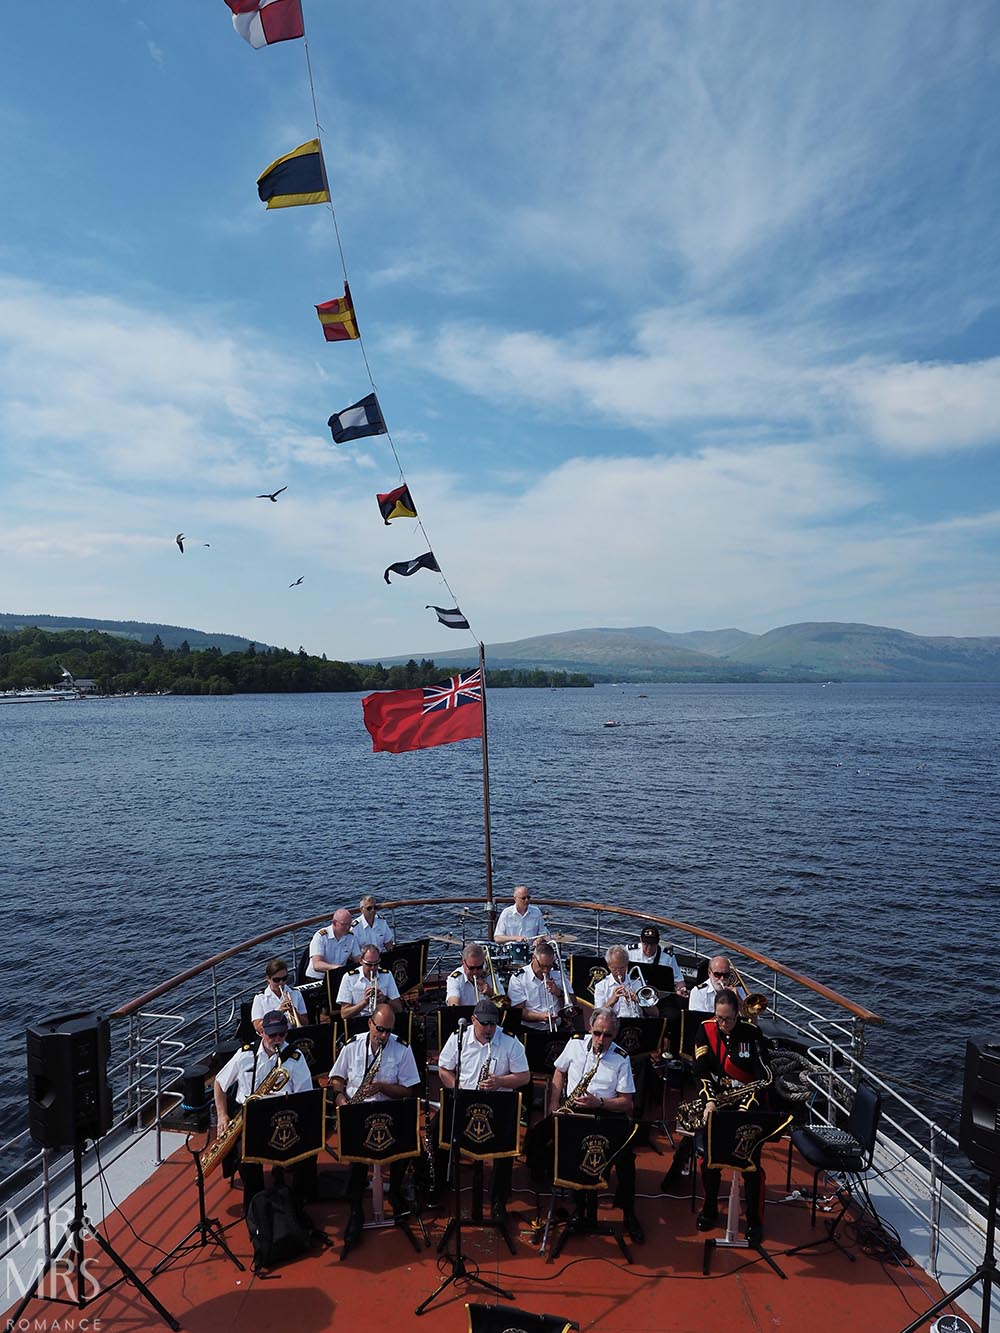 What to do on Loch Lomond - Maid of the Loch